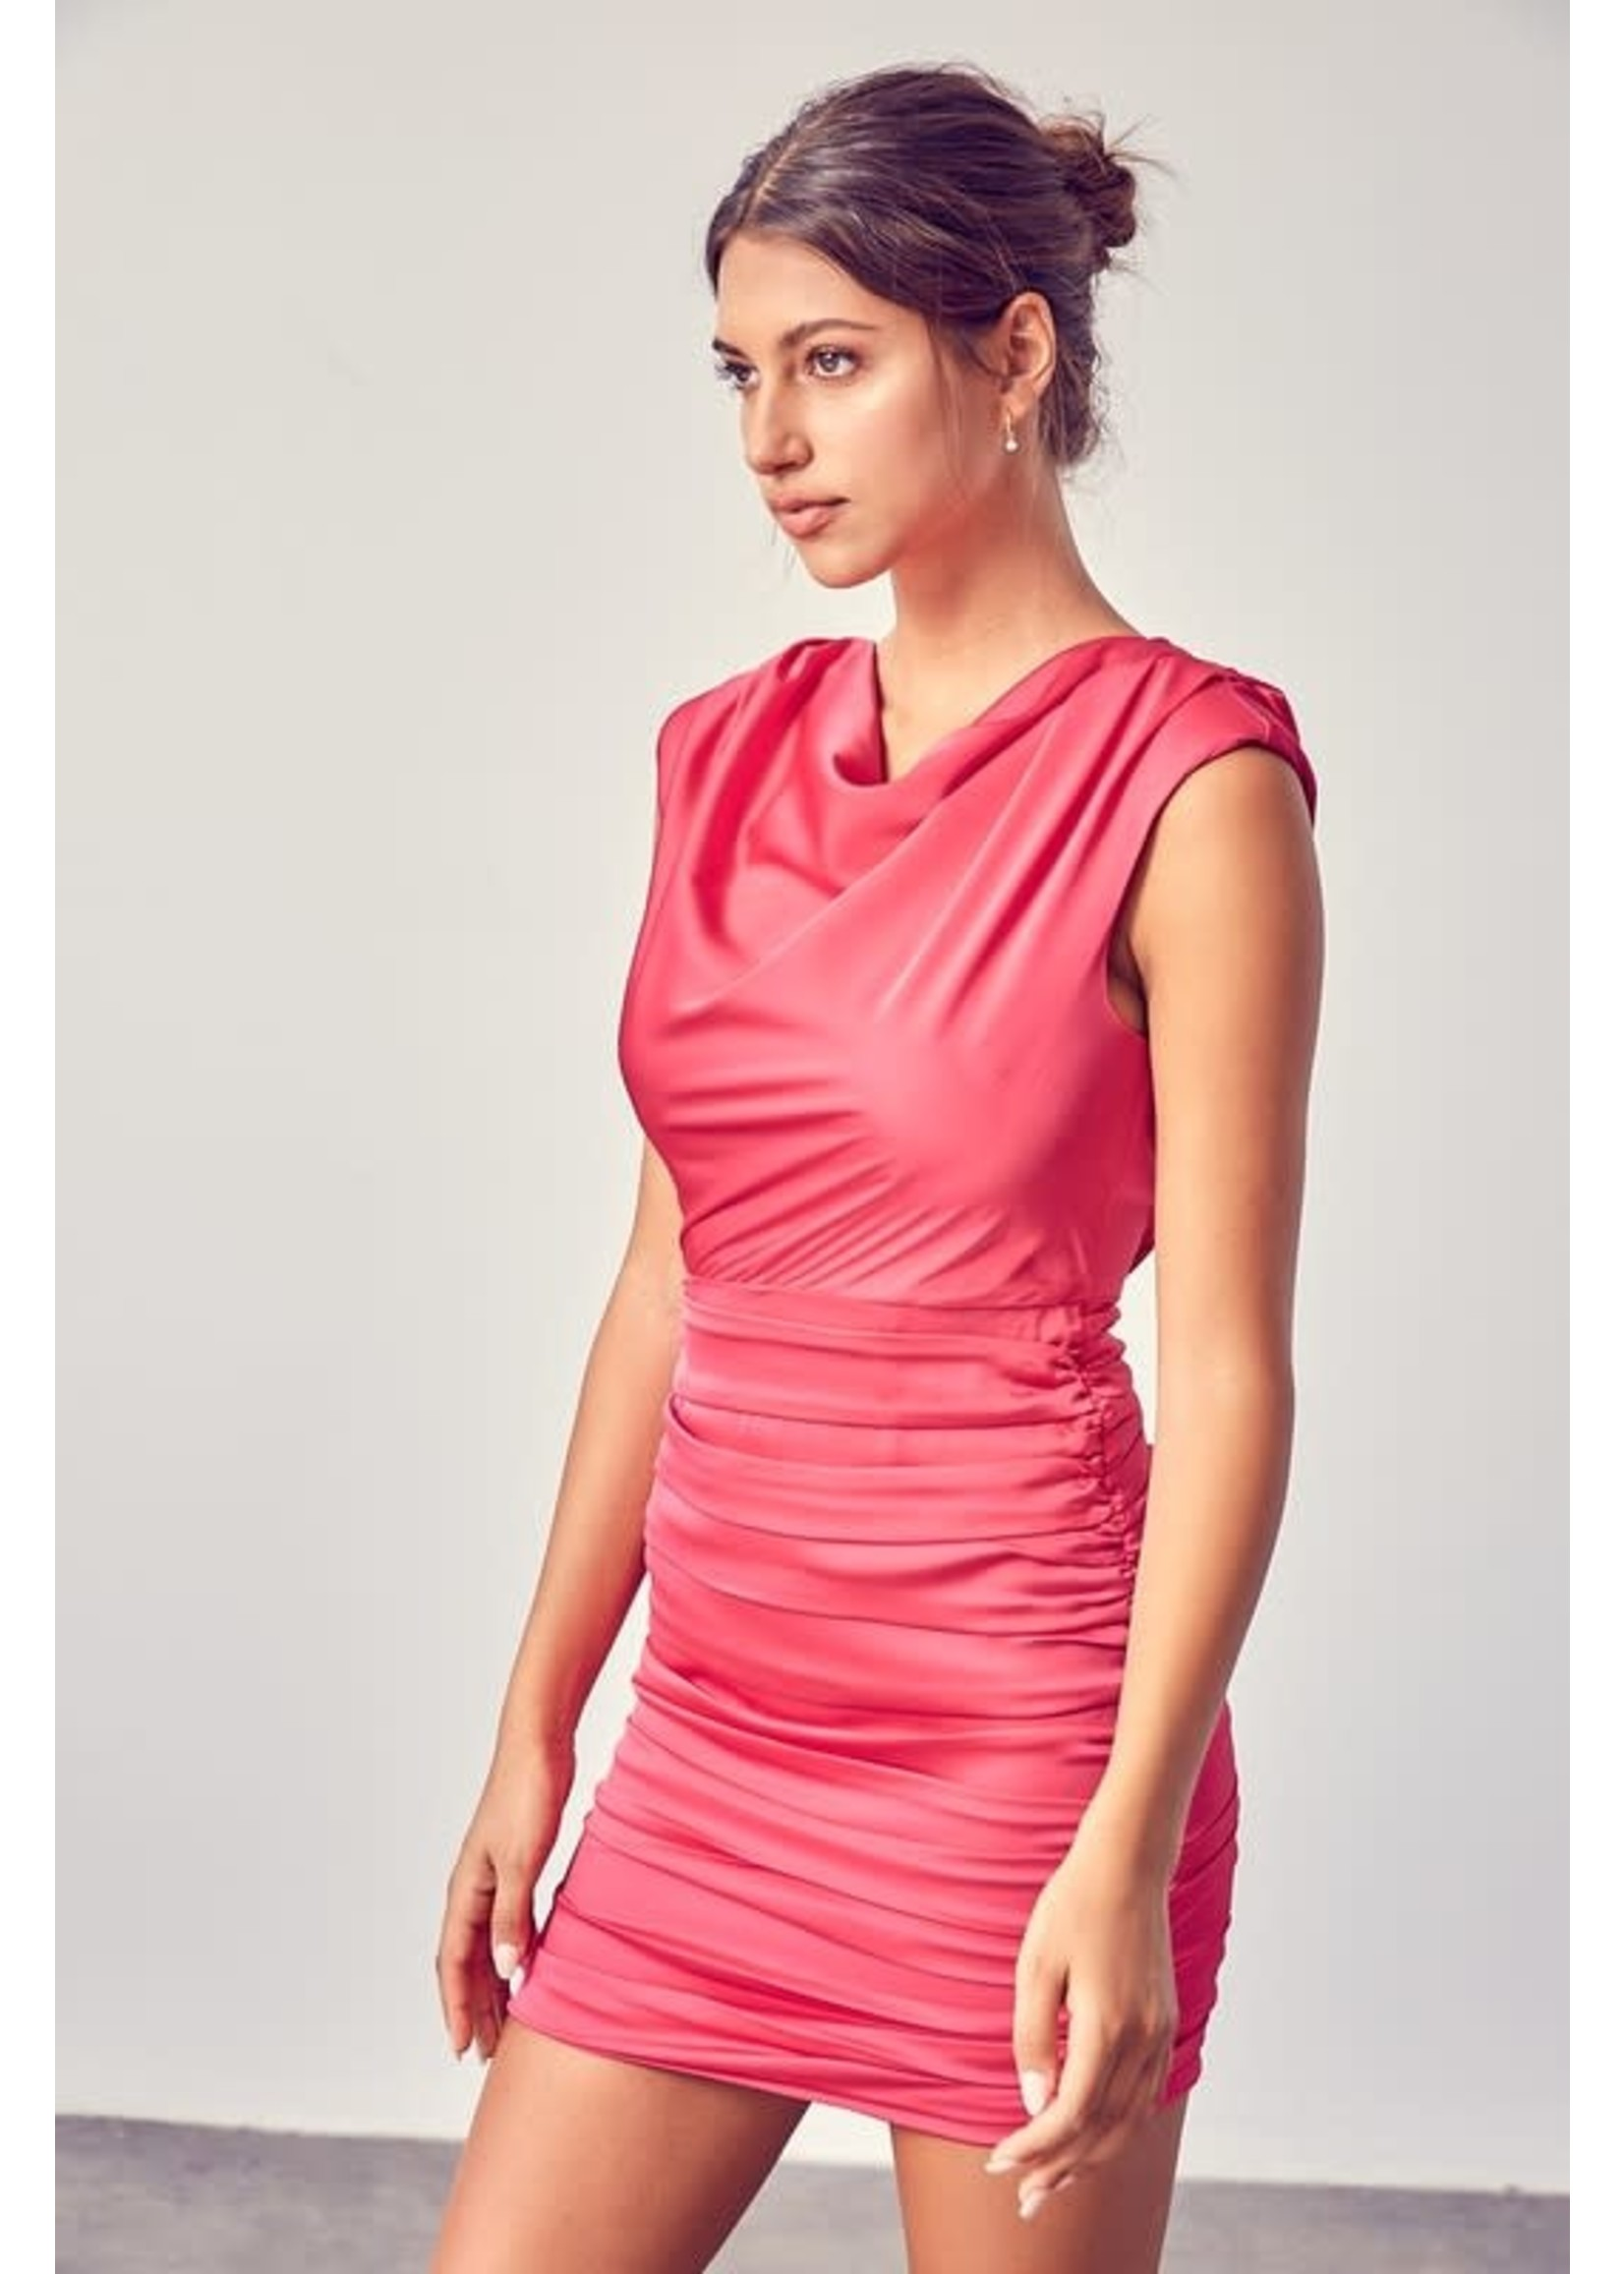 DO + BE High Cowl Neck Ruched Dress - GY0730